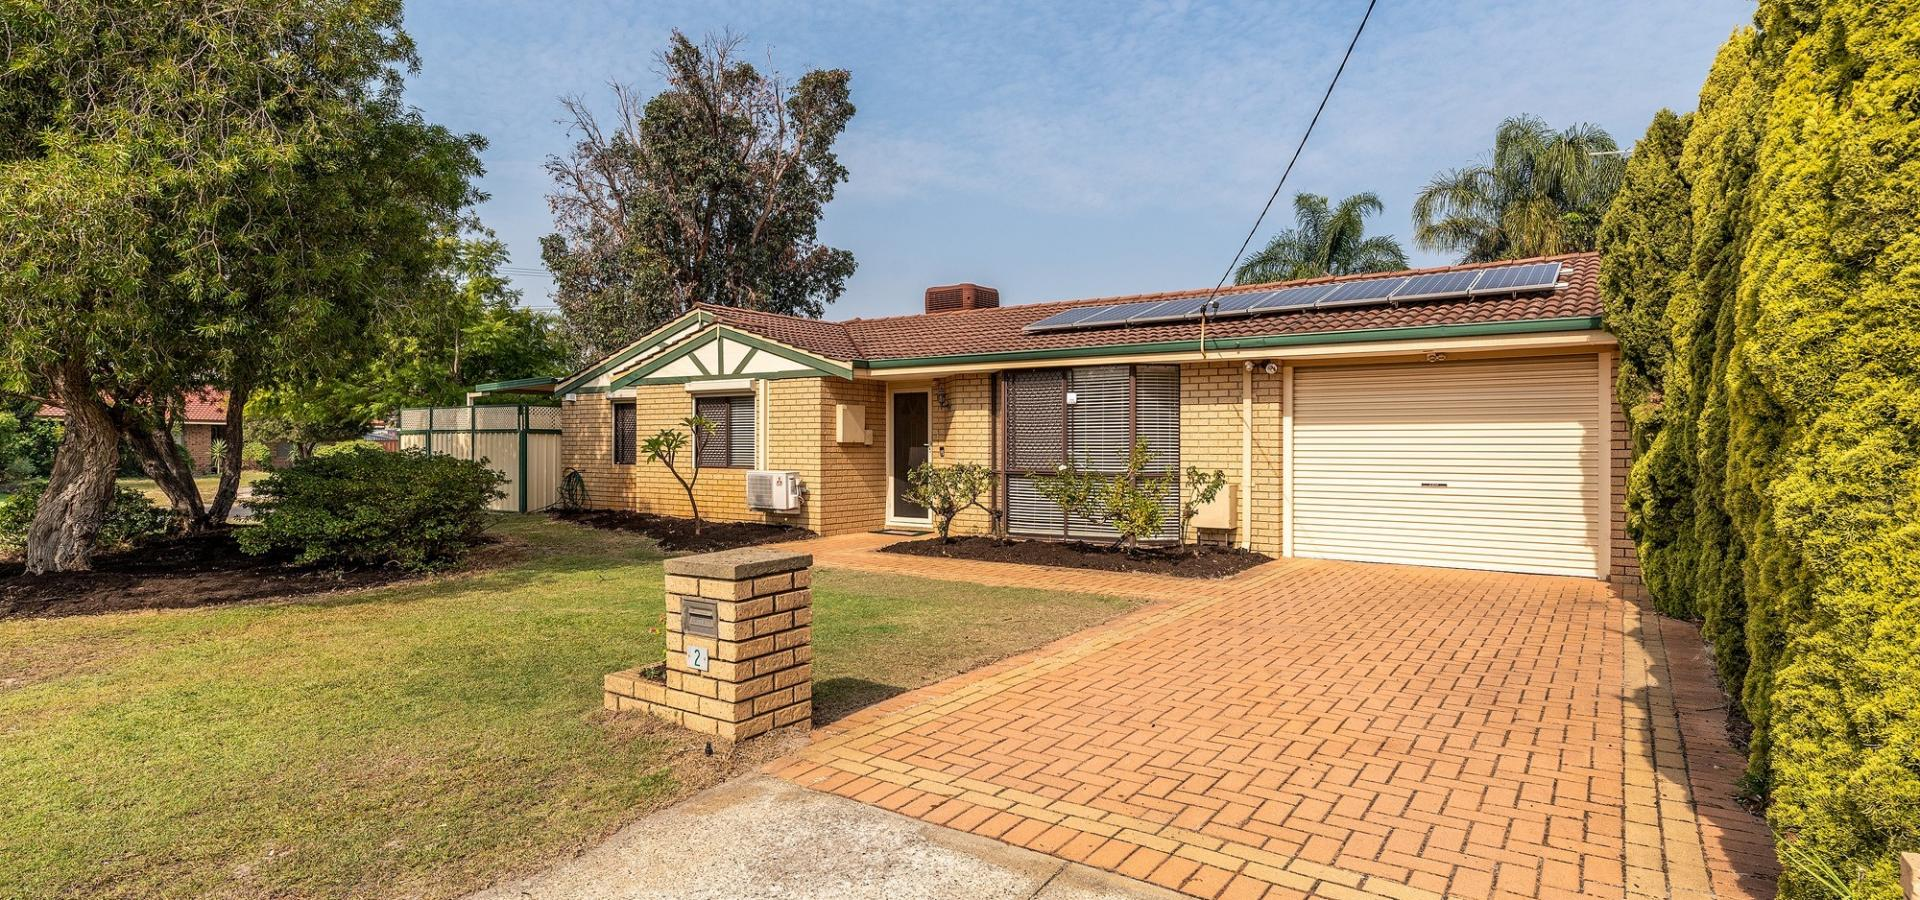 LARGE FAMILY HOME ON LARGE R20 POTENTIALLY SUBDIVIDABLE BLOCK!